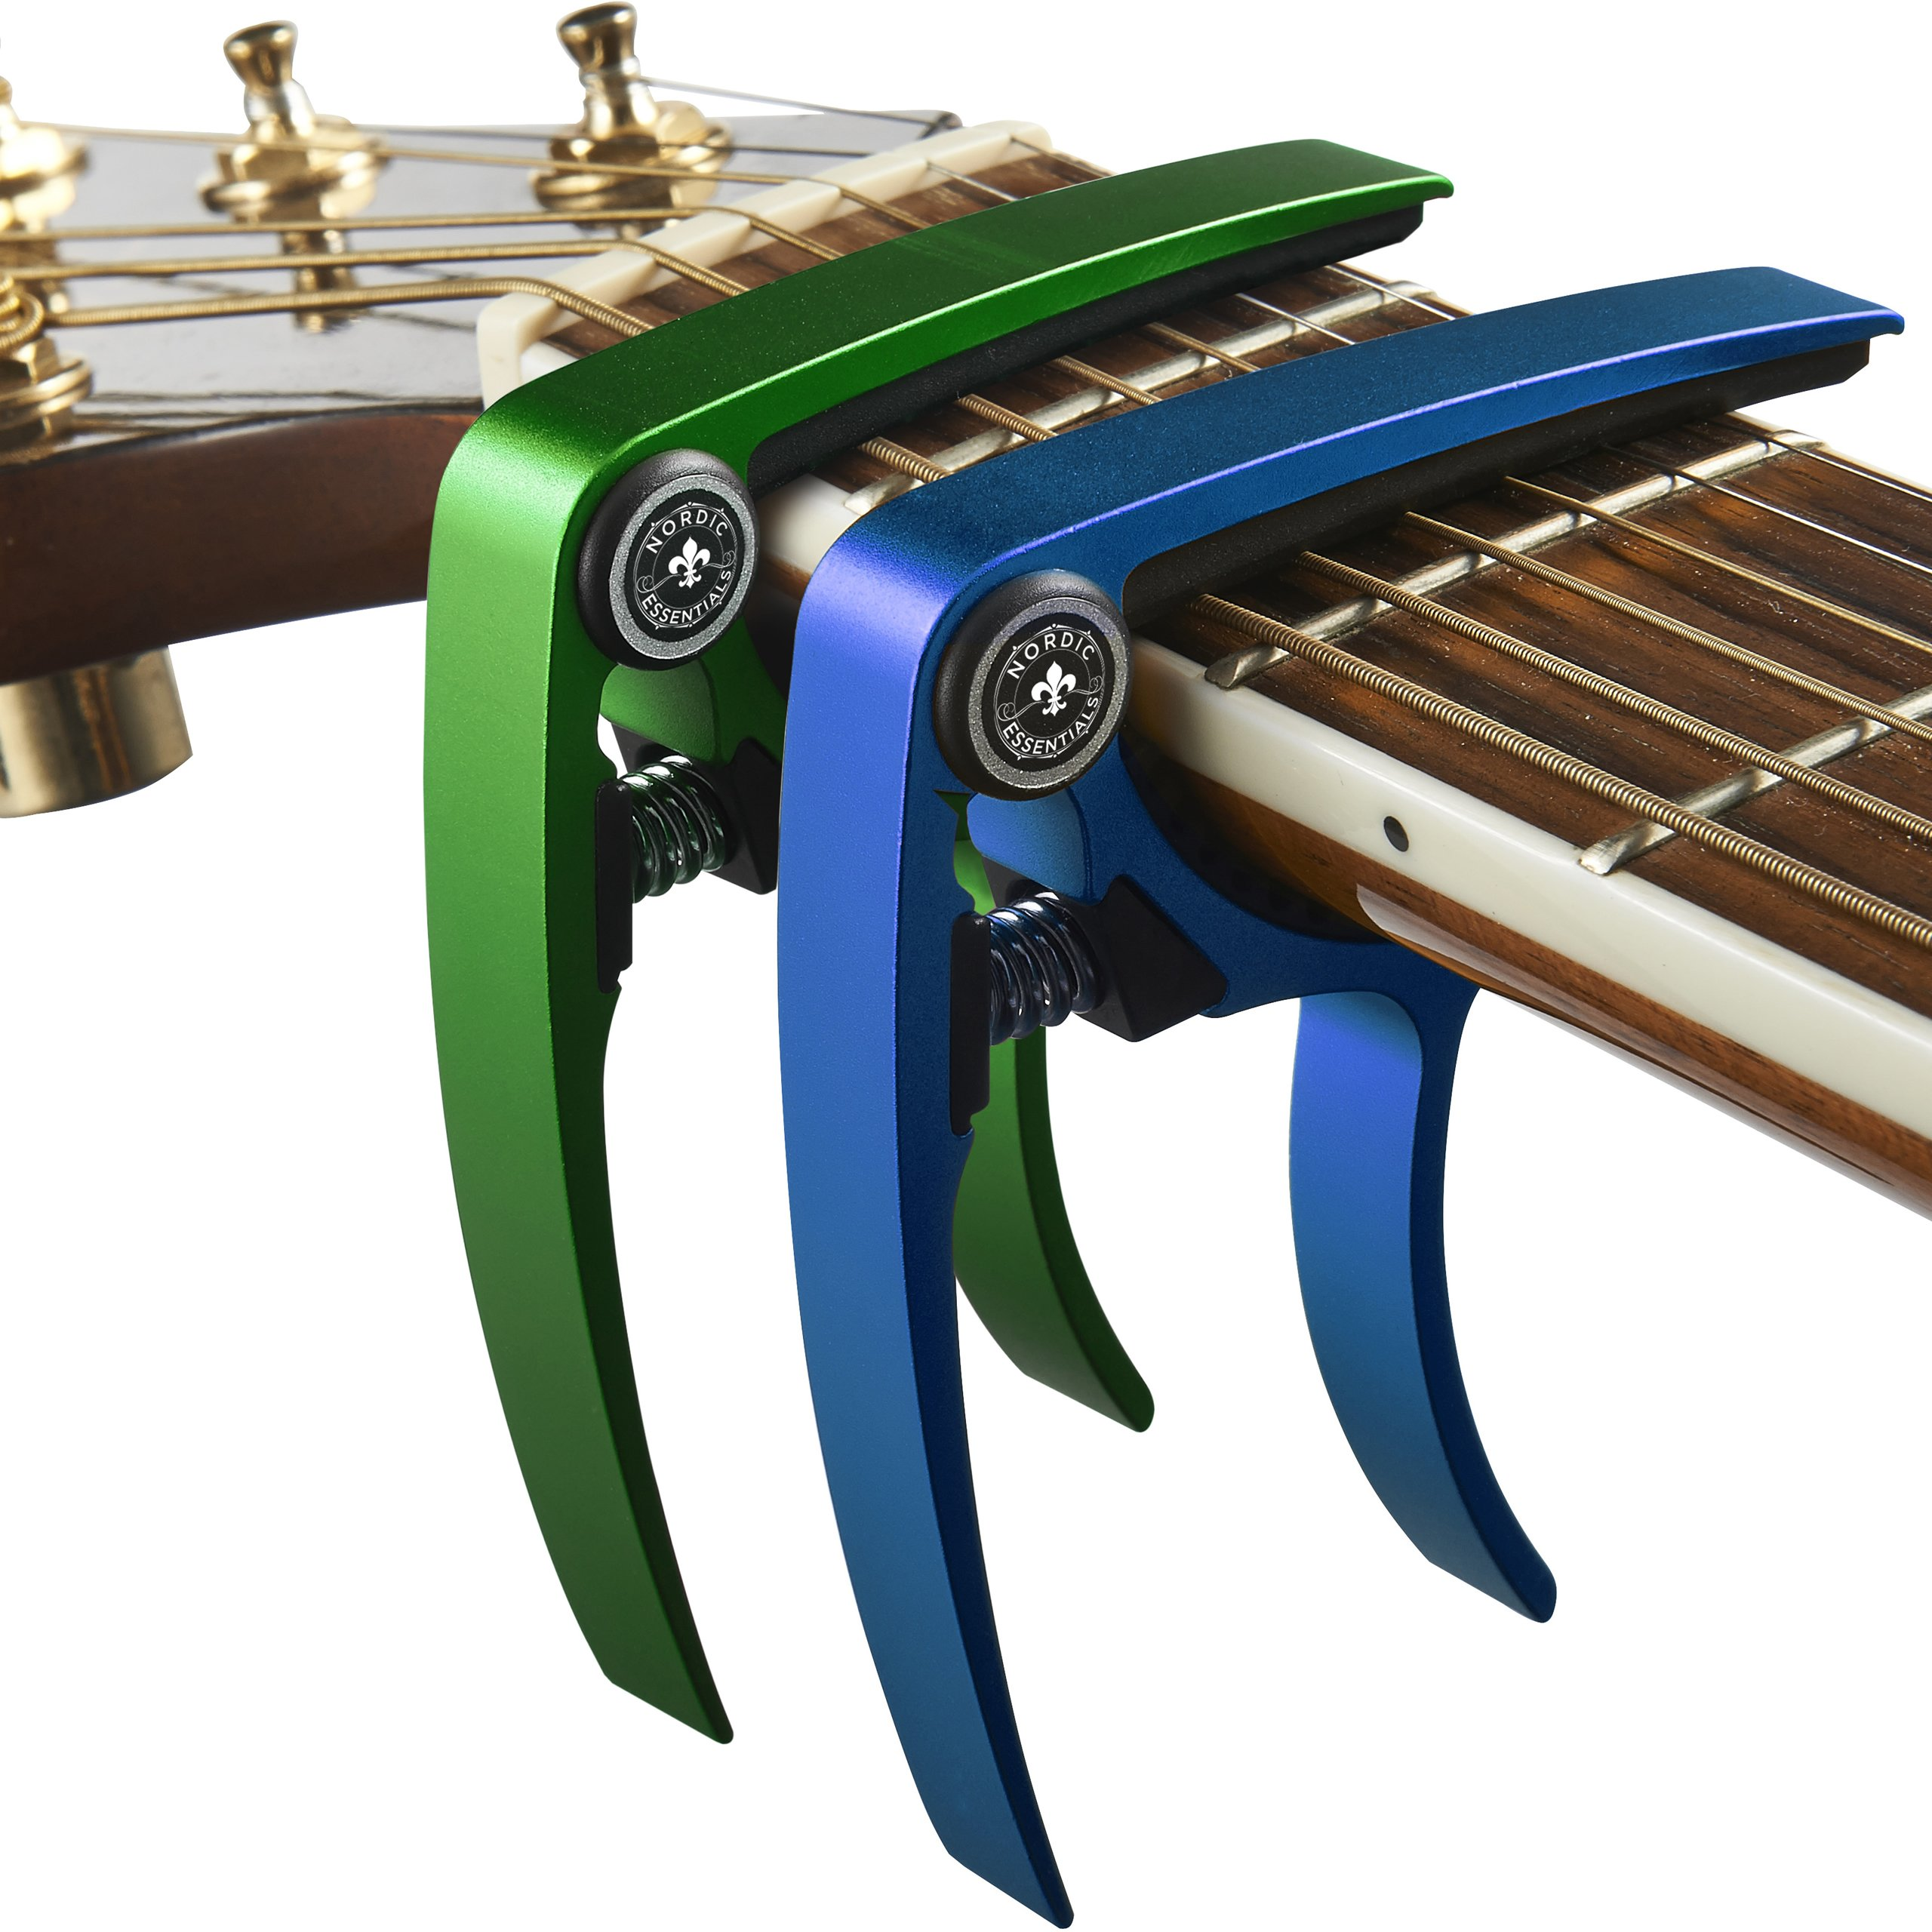 Guitar Capo (2 Pack) for Guitars, Ukulele, Banjo, Mandolin, Bass - Made of Ultra Lightweight Aluminum Metal (1.2 oz!) for 6 & 12 String Instruments - Nordic Essentials, (Green+Blue) by Nordic Essentials